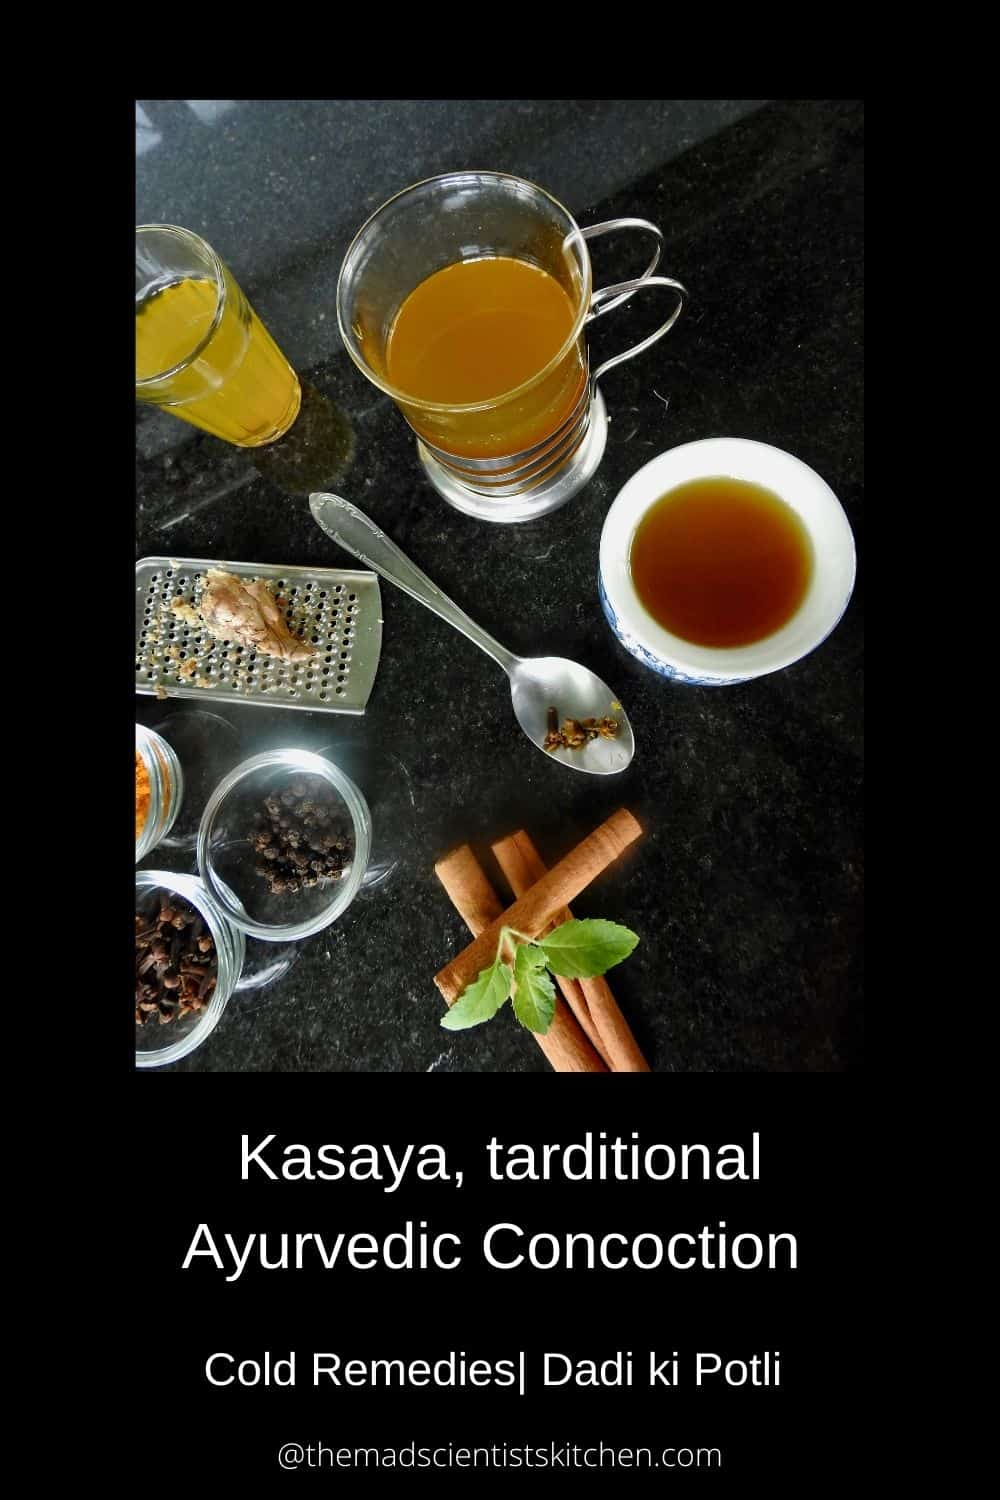 Kasayam, with most of its ingredients